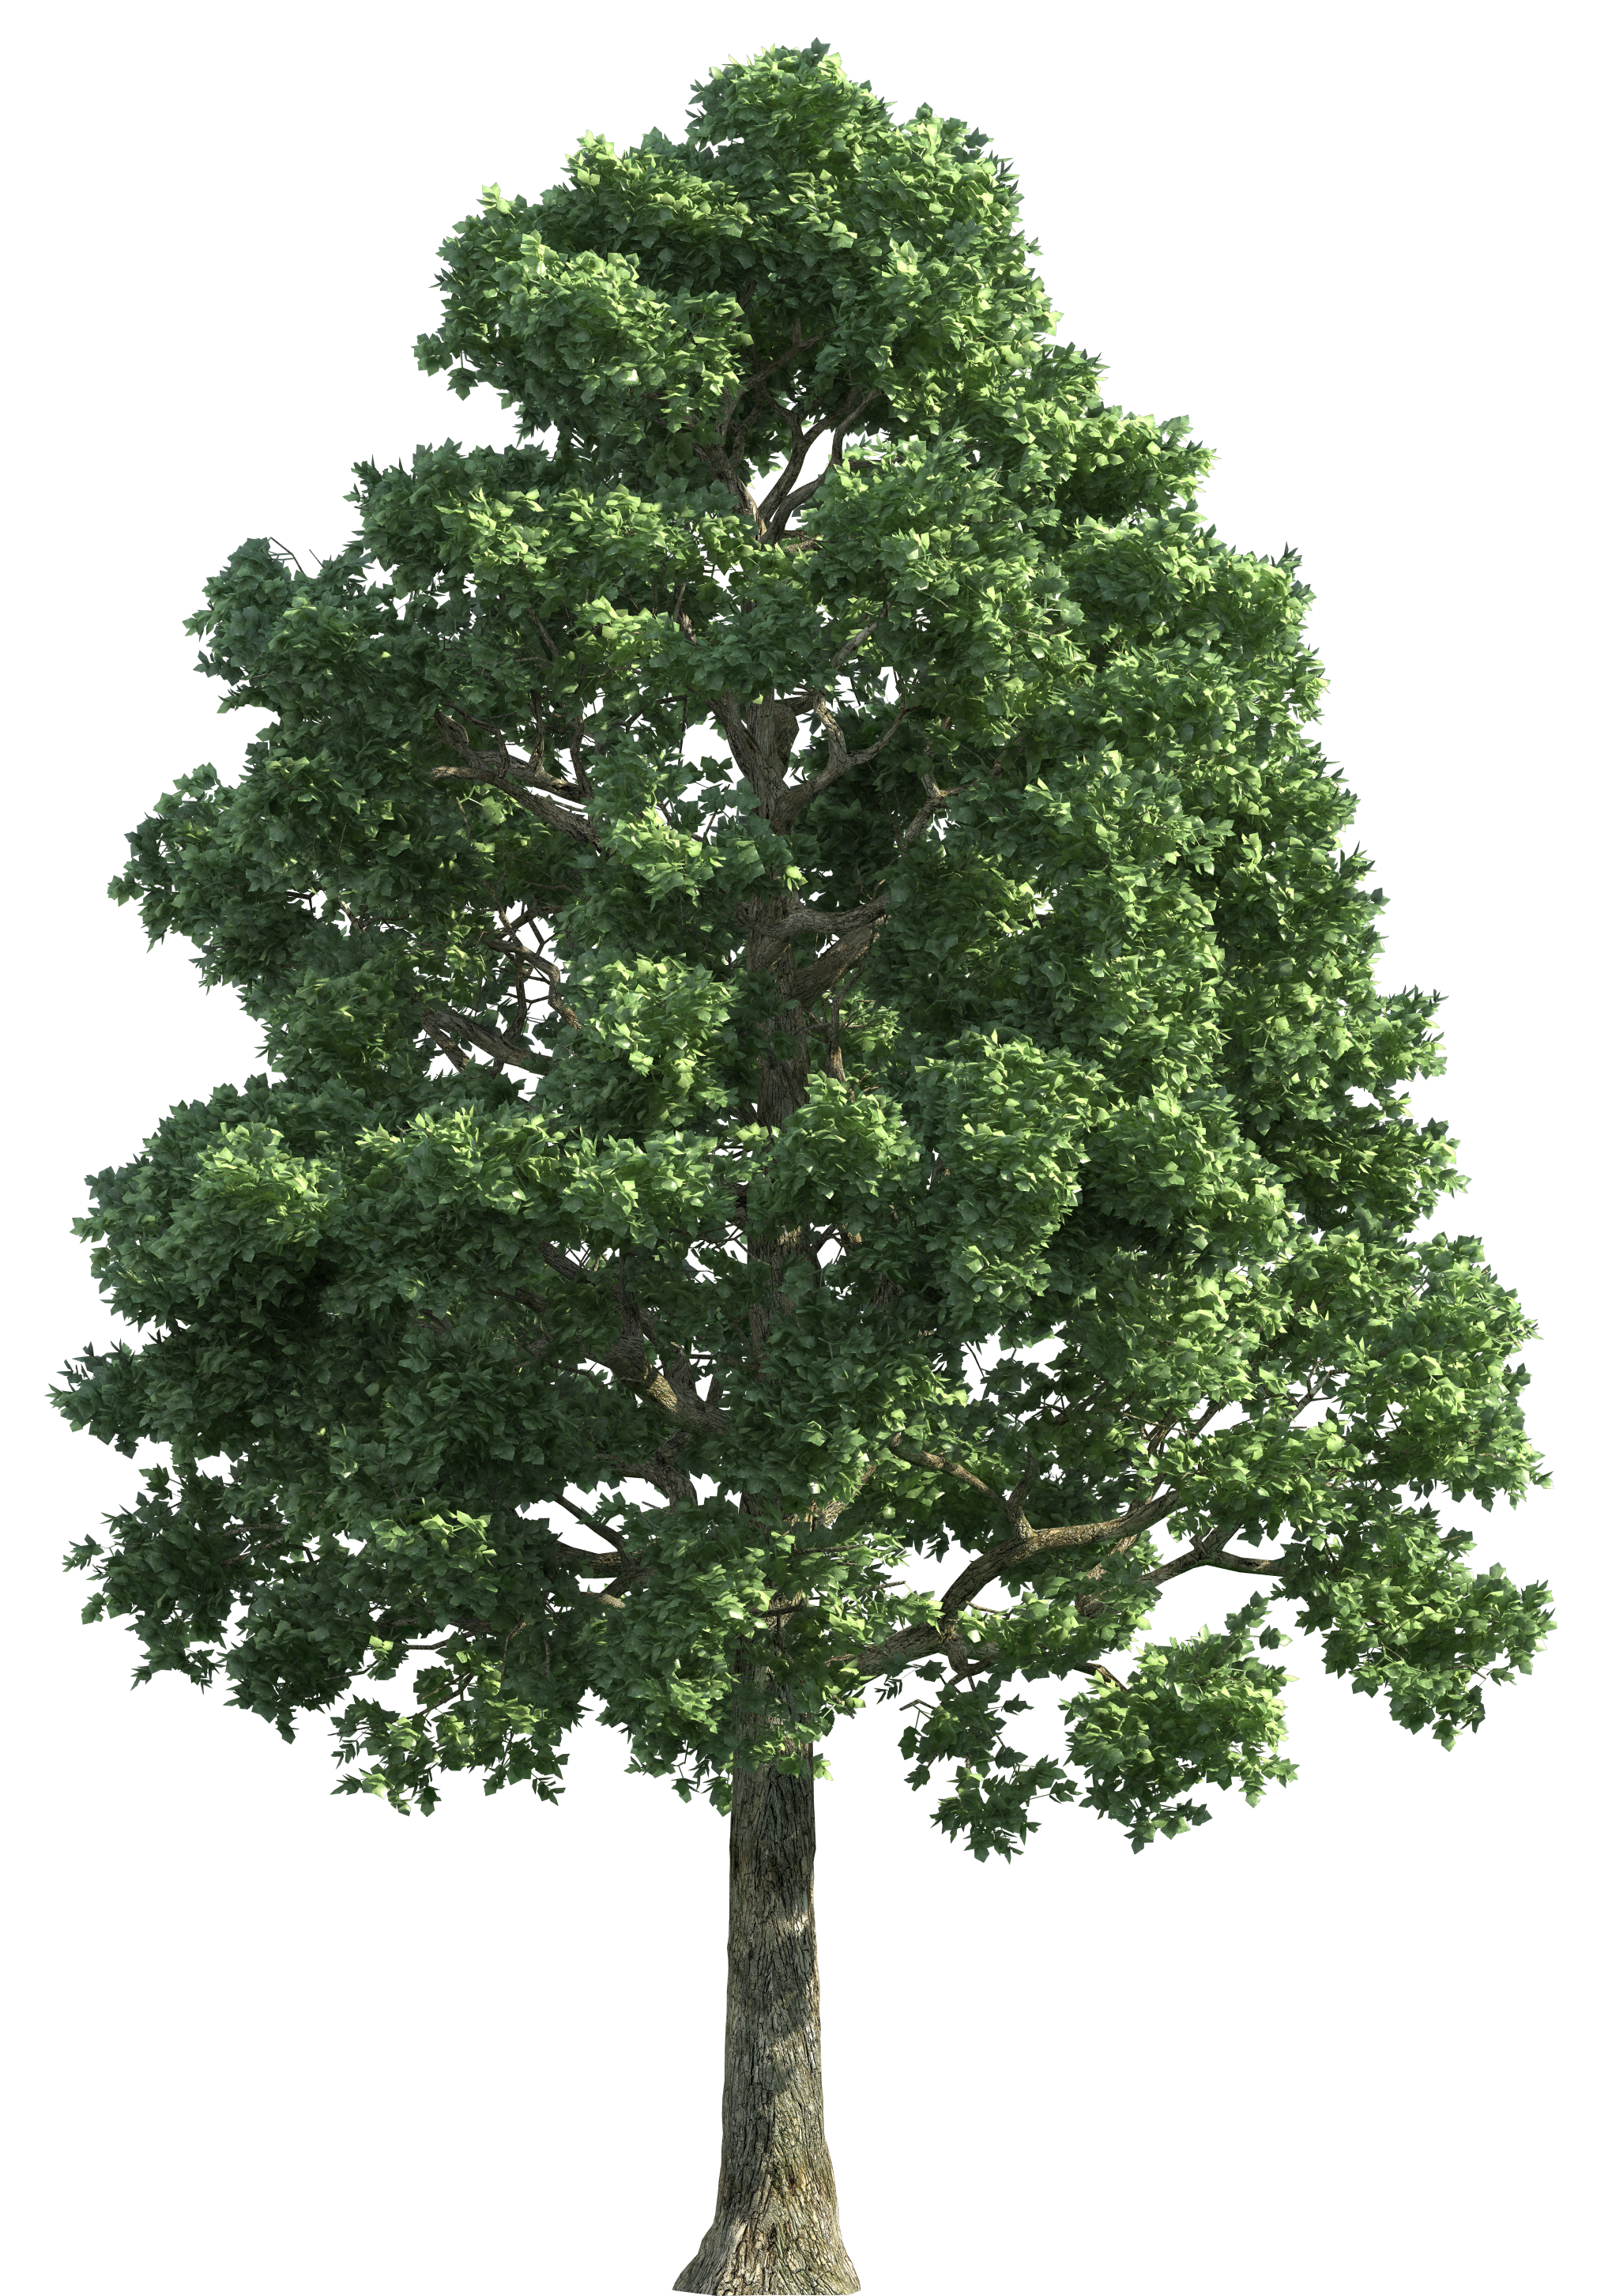 Oak tree png. Image result for trees